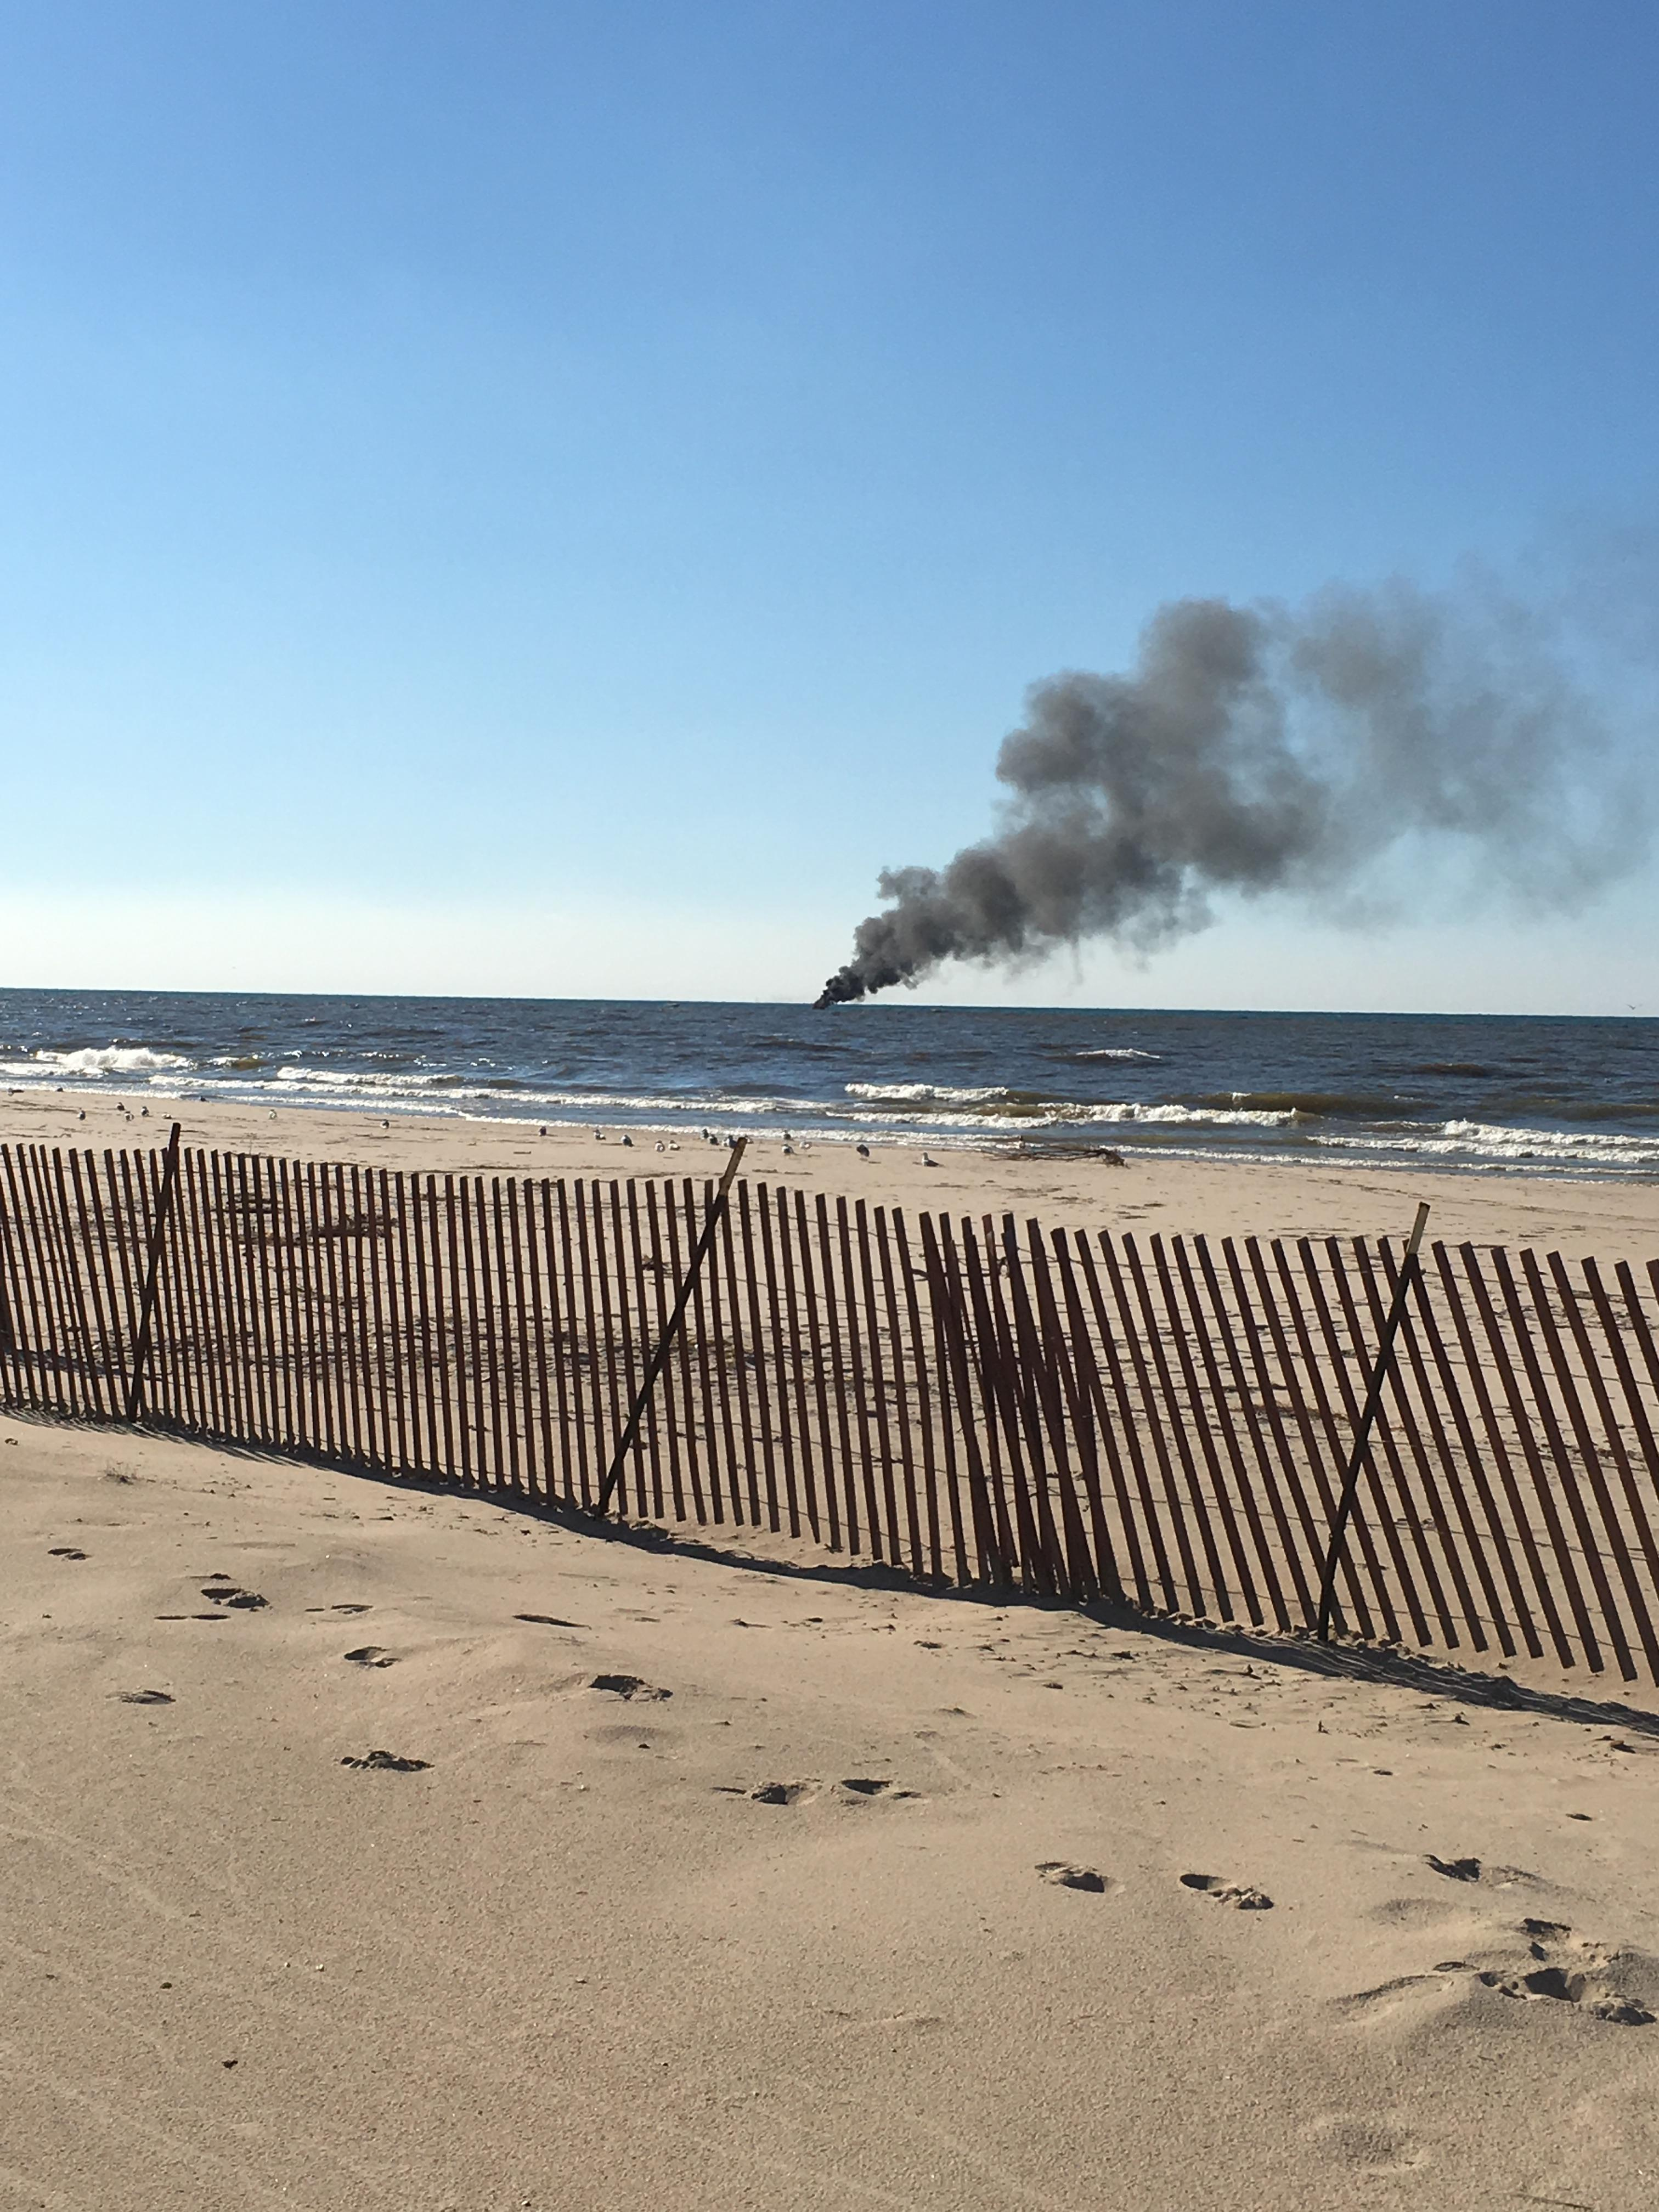 South Haven Area Emergency Services responded to a boat explosion and fire off the South Haven pier in Lake Michigan. (Courtesy of Trevor Clayton)